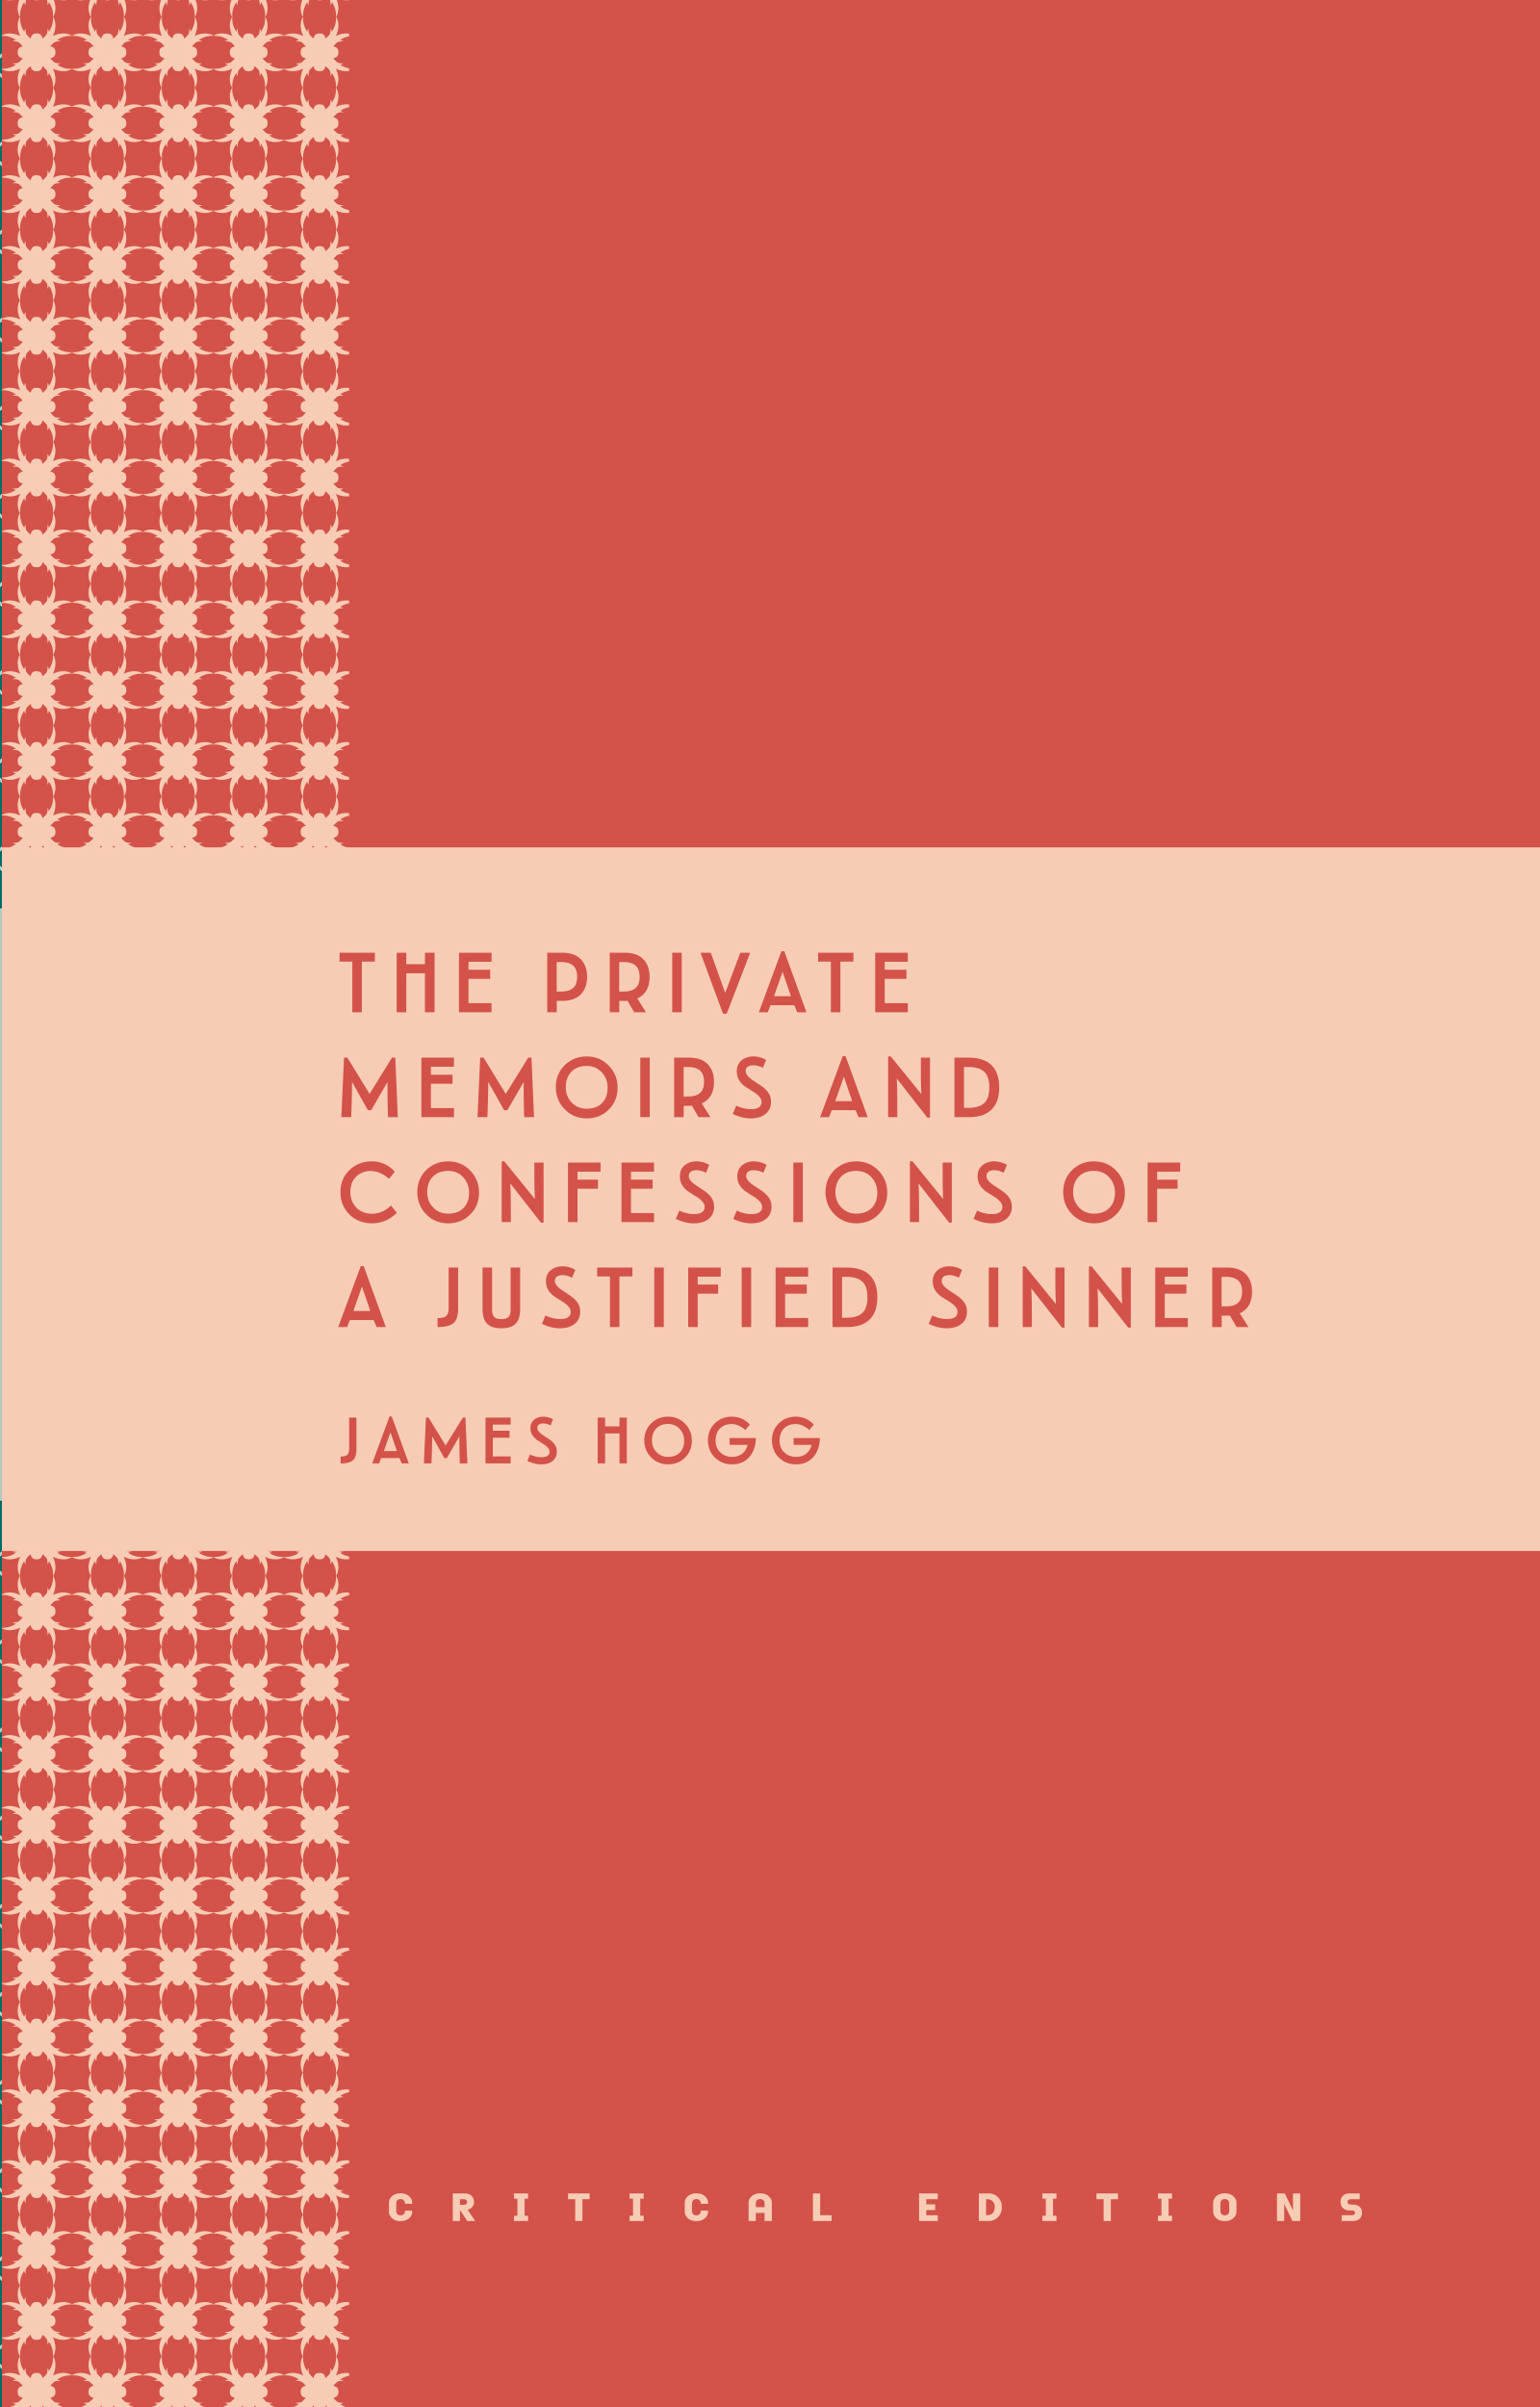 The Private Memoirs and Confessions of a Justified Sinner by James Hogg with an introduction by Ariell Cacciola The Mantle